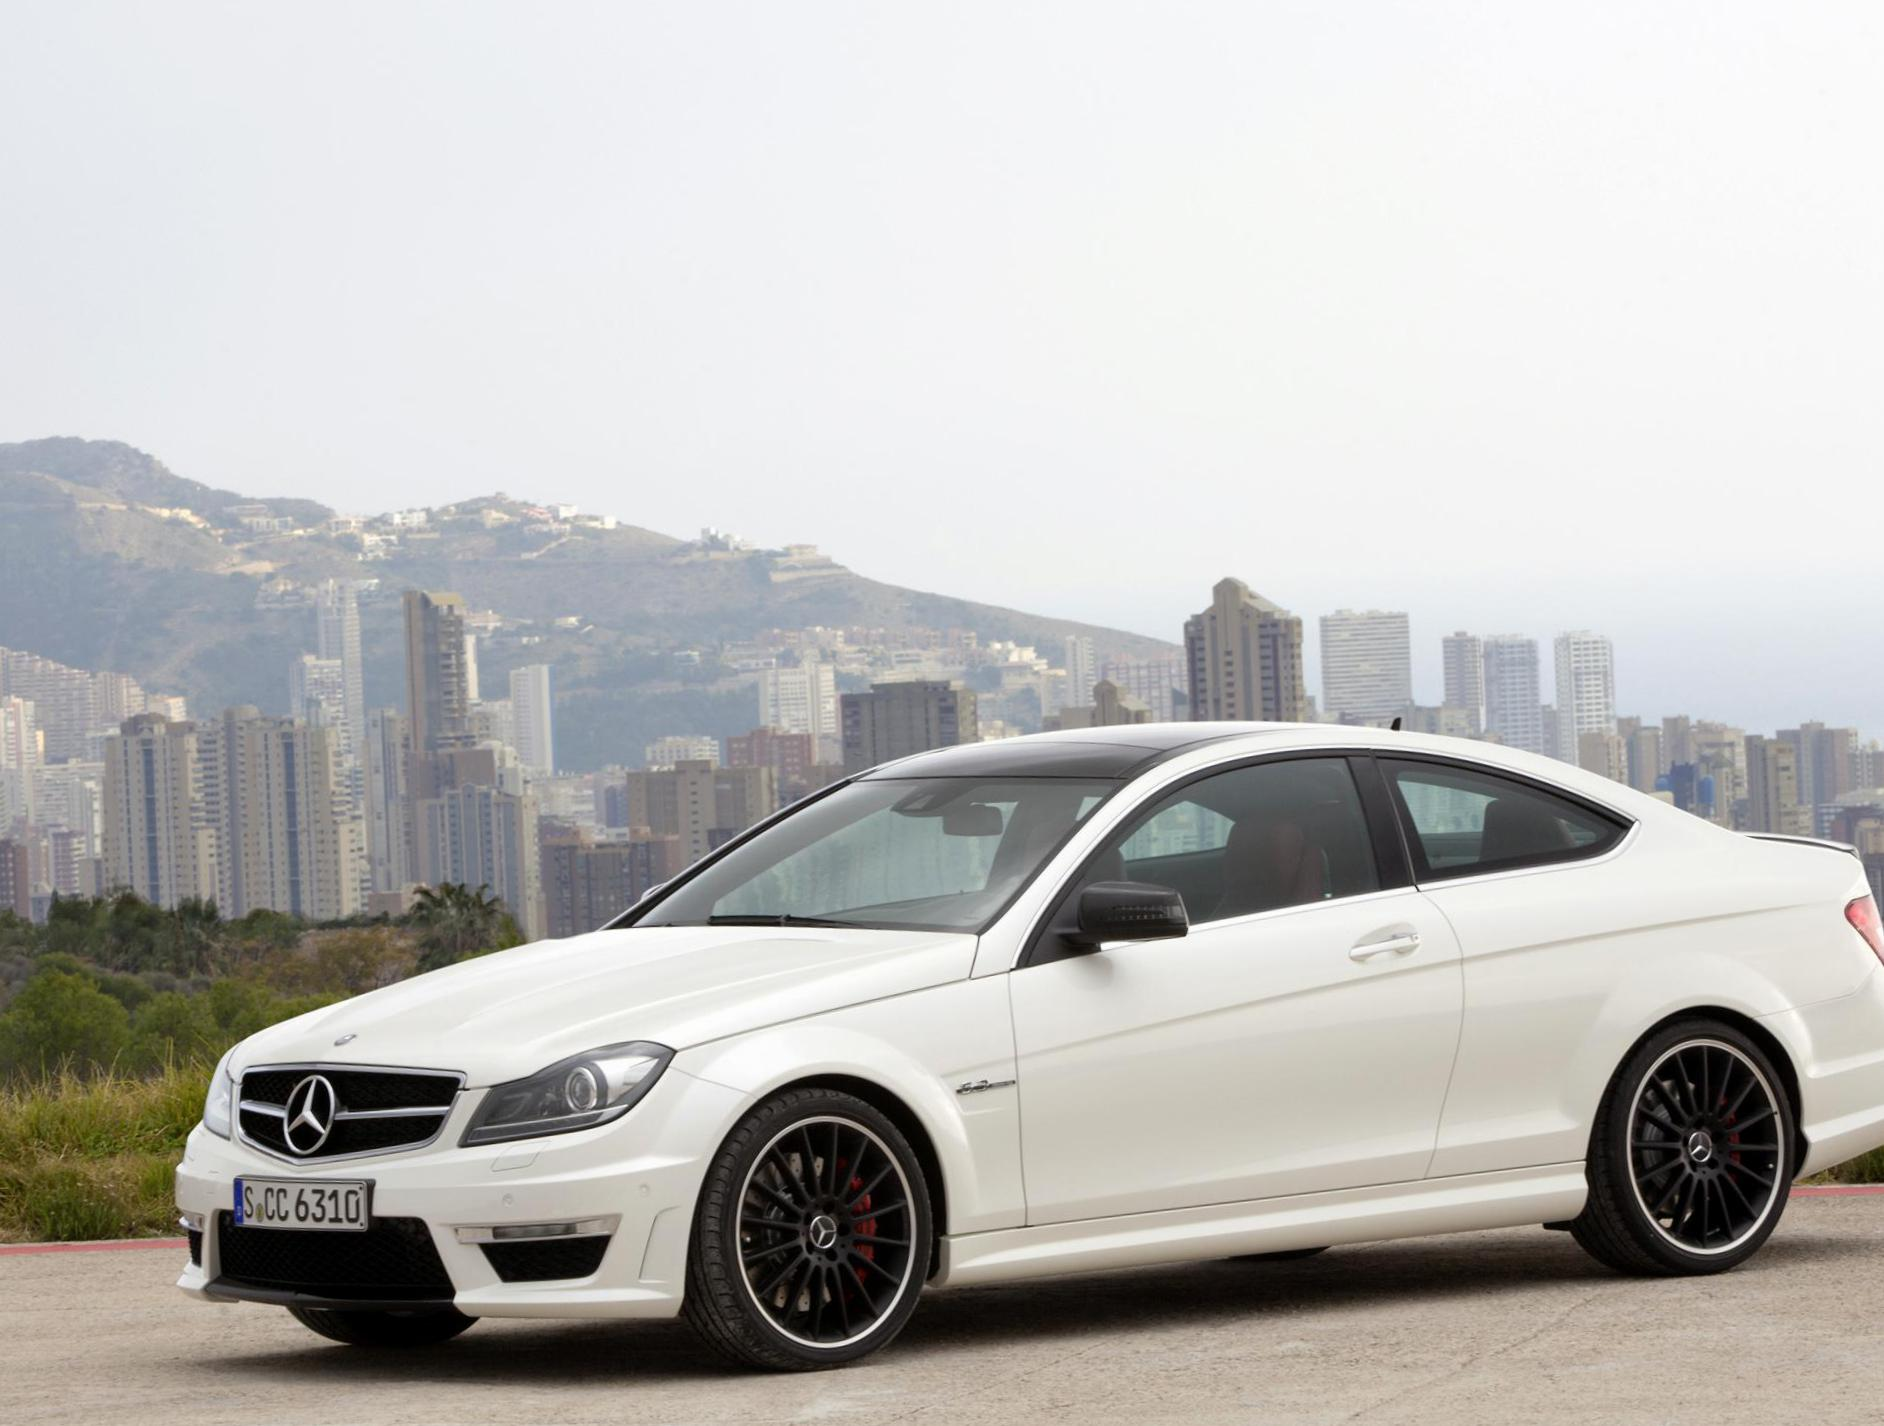 C-Class Coupe (С204) Mercedes for sale suv